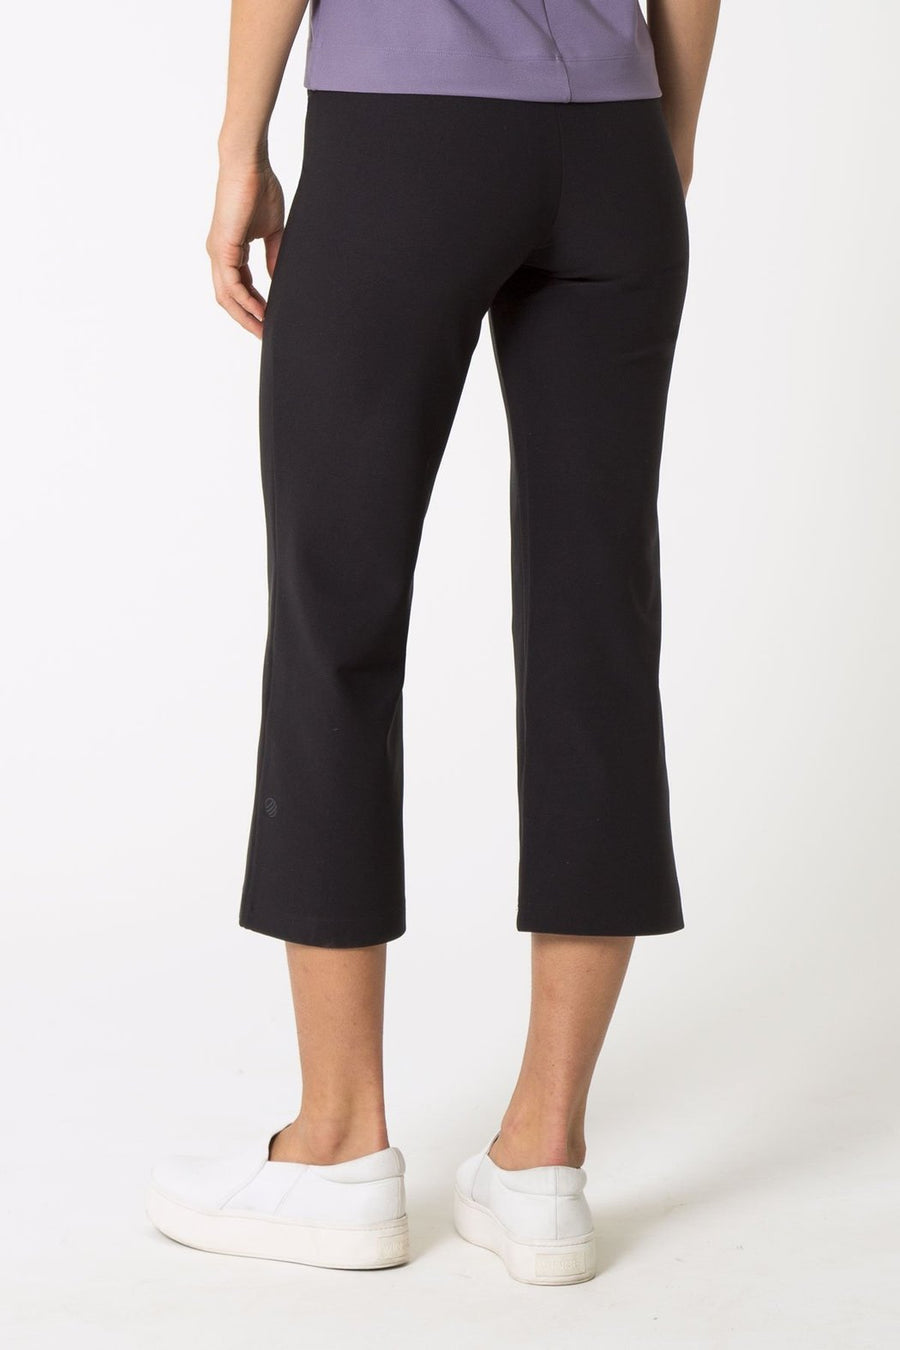 Ebony Cropped Flair Pant